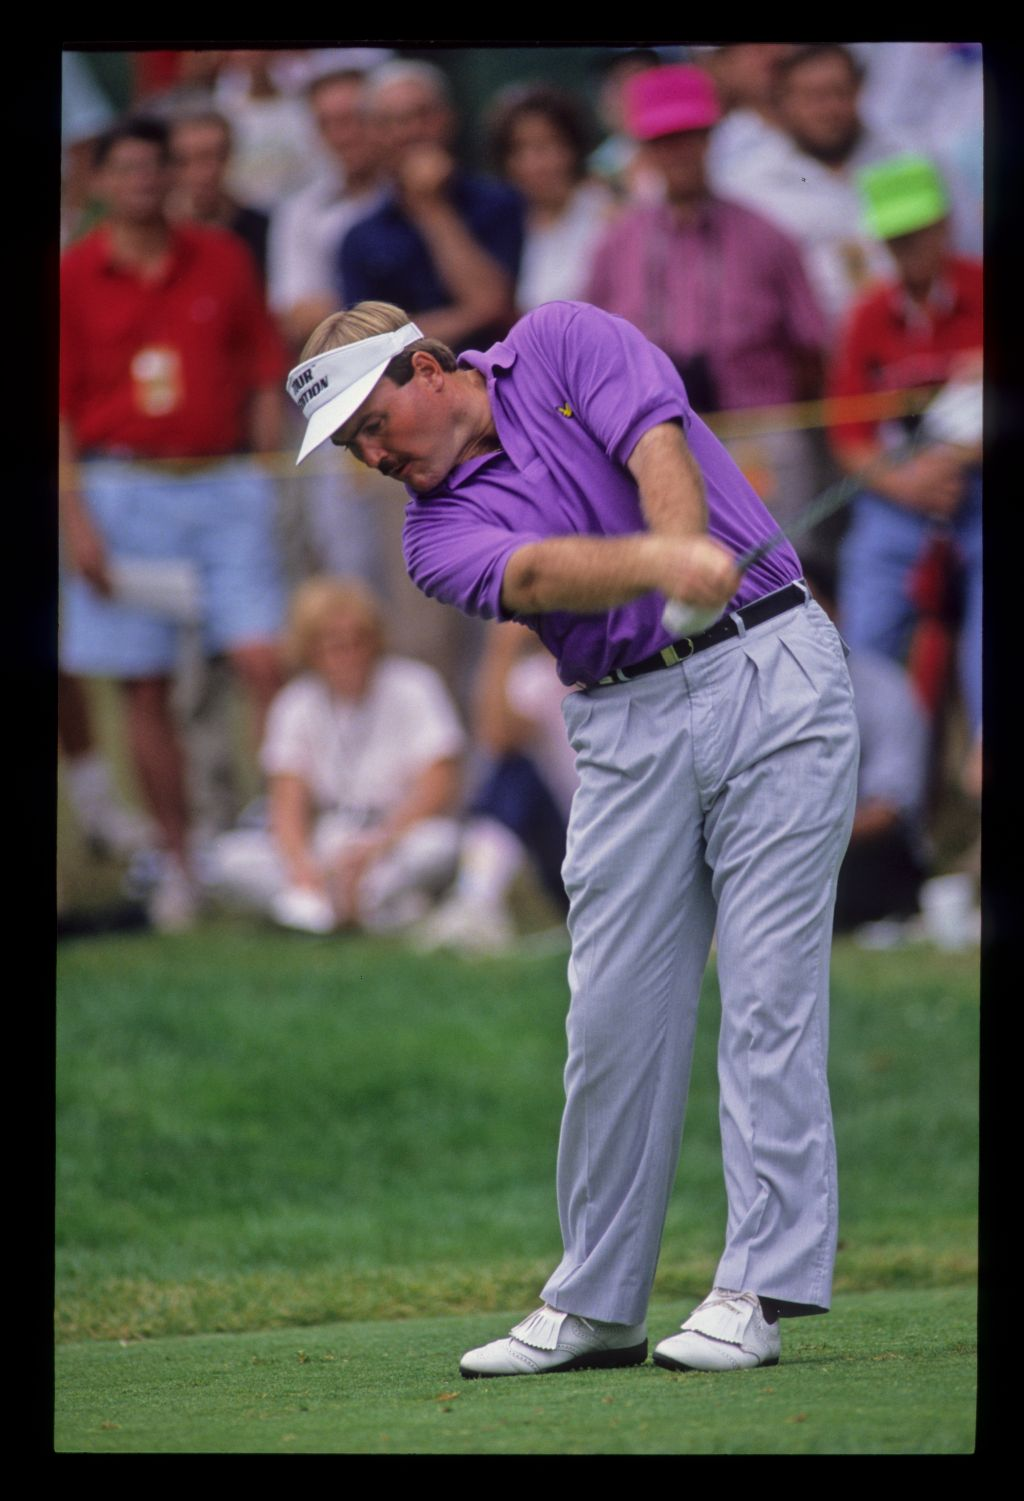 Ronan Rafferty staying down through the ball on the tee during the 1990 US Open